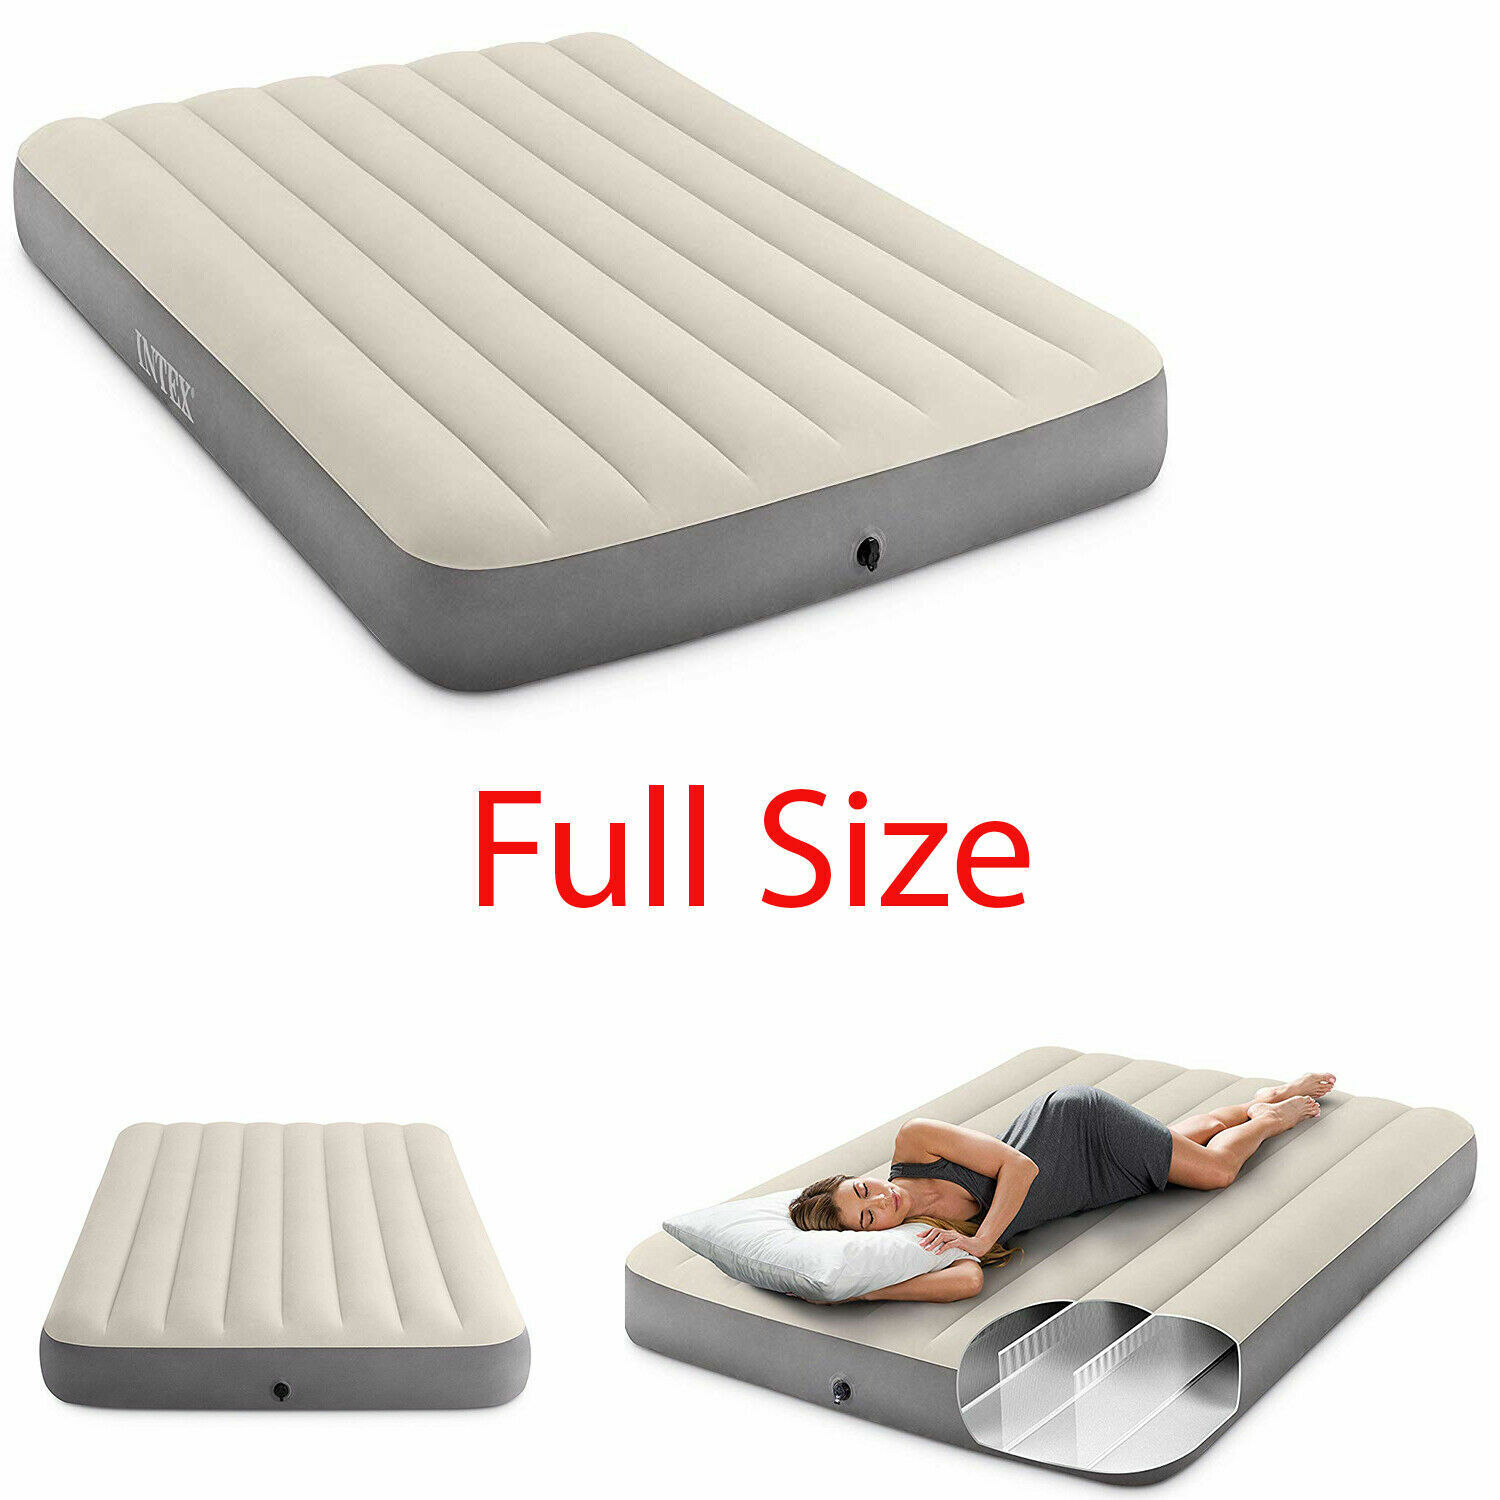 Full Size Inflatable Airbed Camping Firm Mattress High Air B